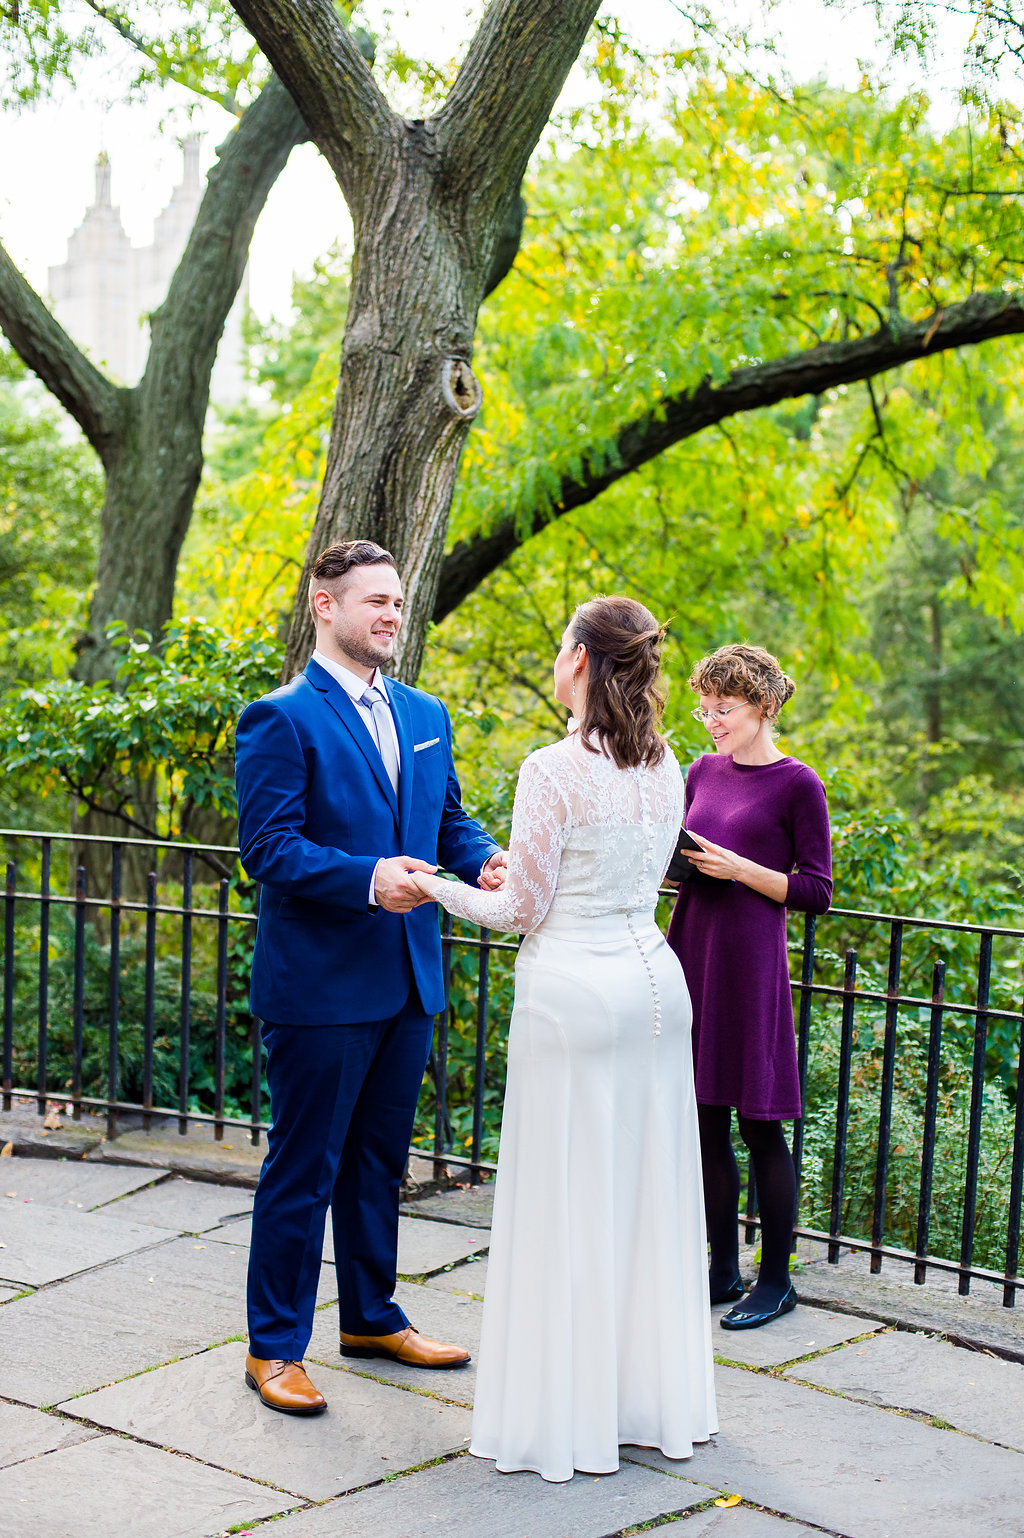 Wedding Officiant marries couple on the balcony by the Shakespeare Garden in Central Park.